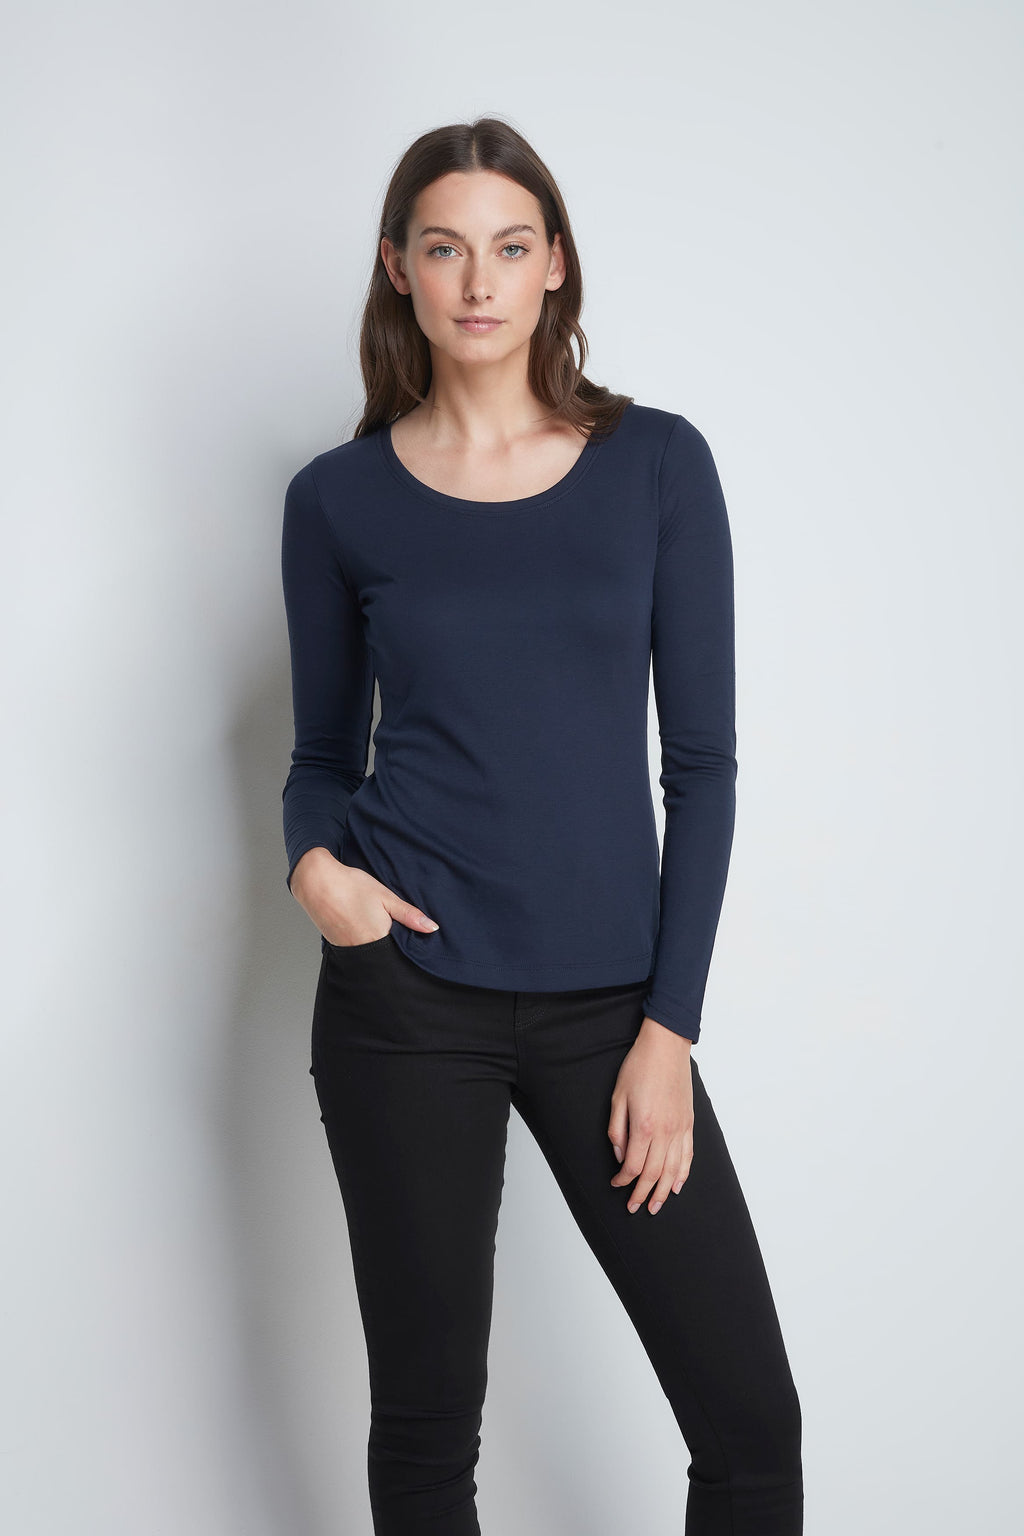 Long Sleeve Navy Scoop Neck T-shirt - High Quality Flattering Scoop Neck - Classic Mid-Weight Long Sleeve T-Shirt